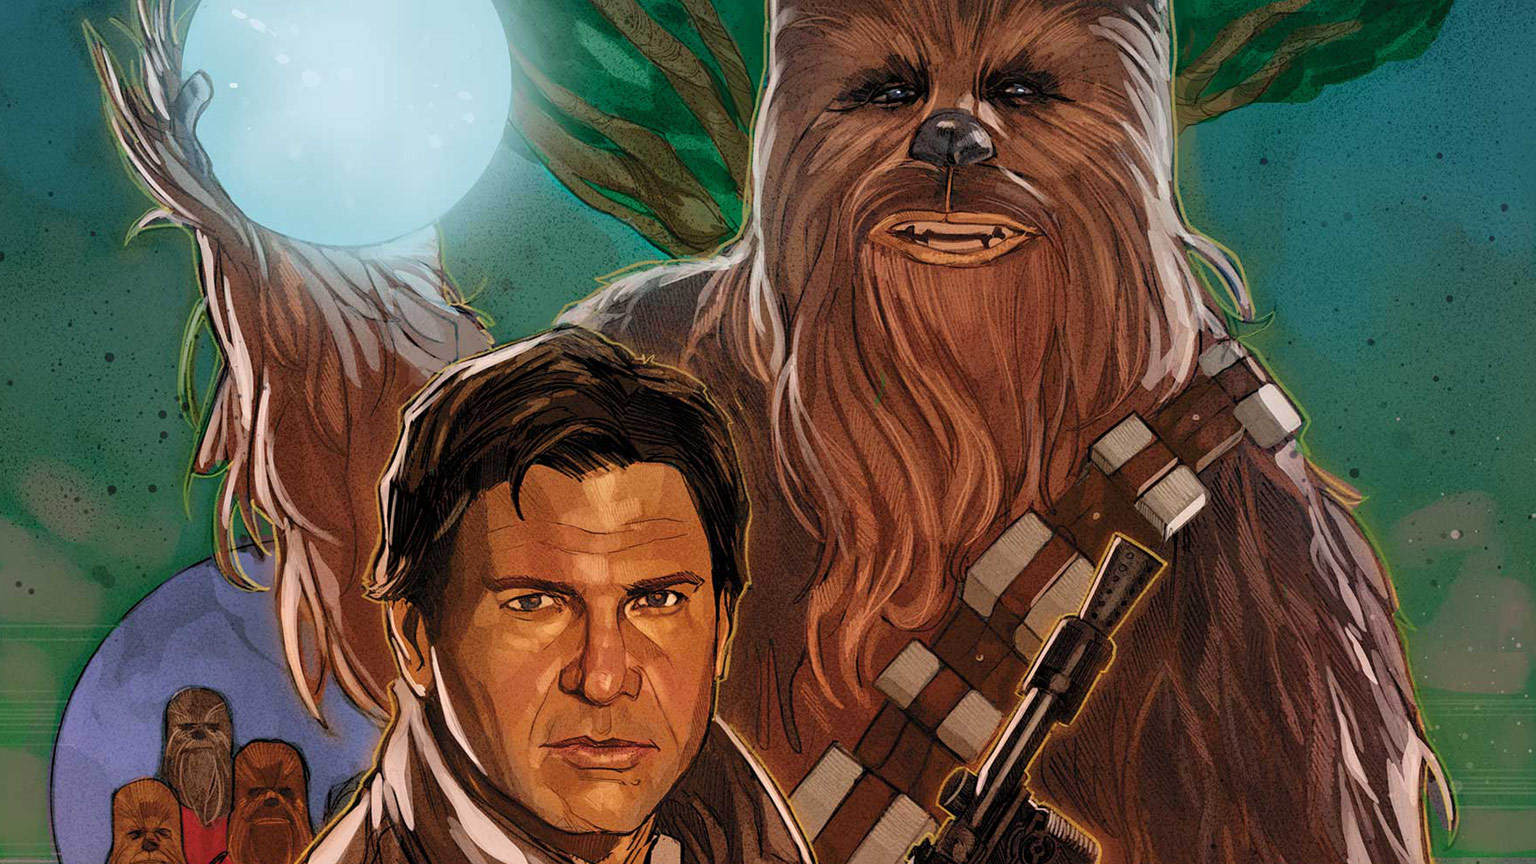 Han Solo and Chewbacca on the cover of Star Wars: Life Day issue #1.